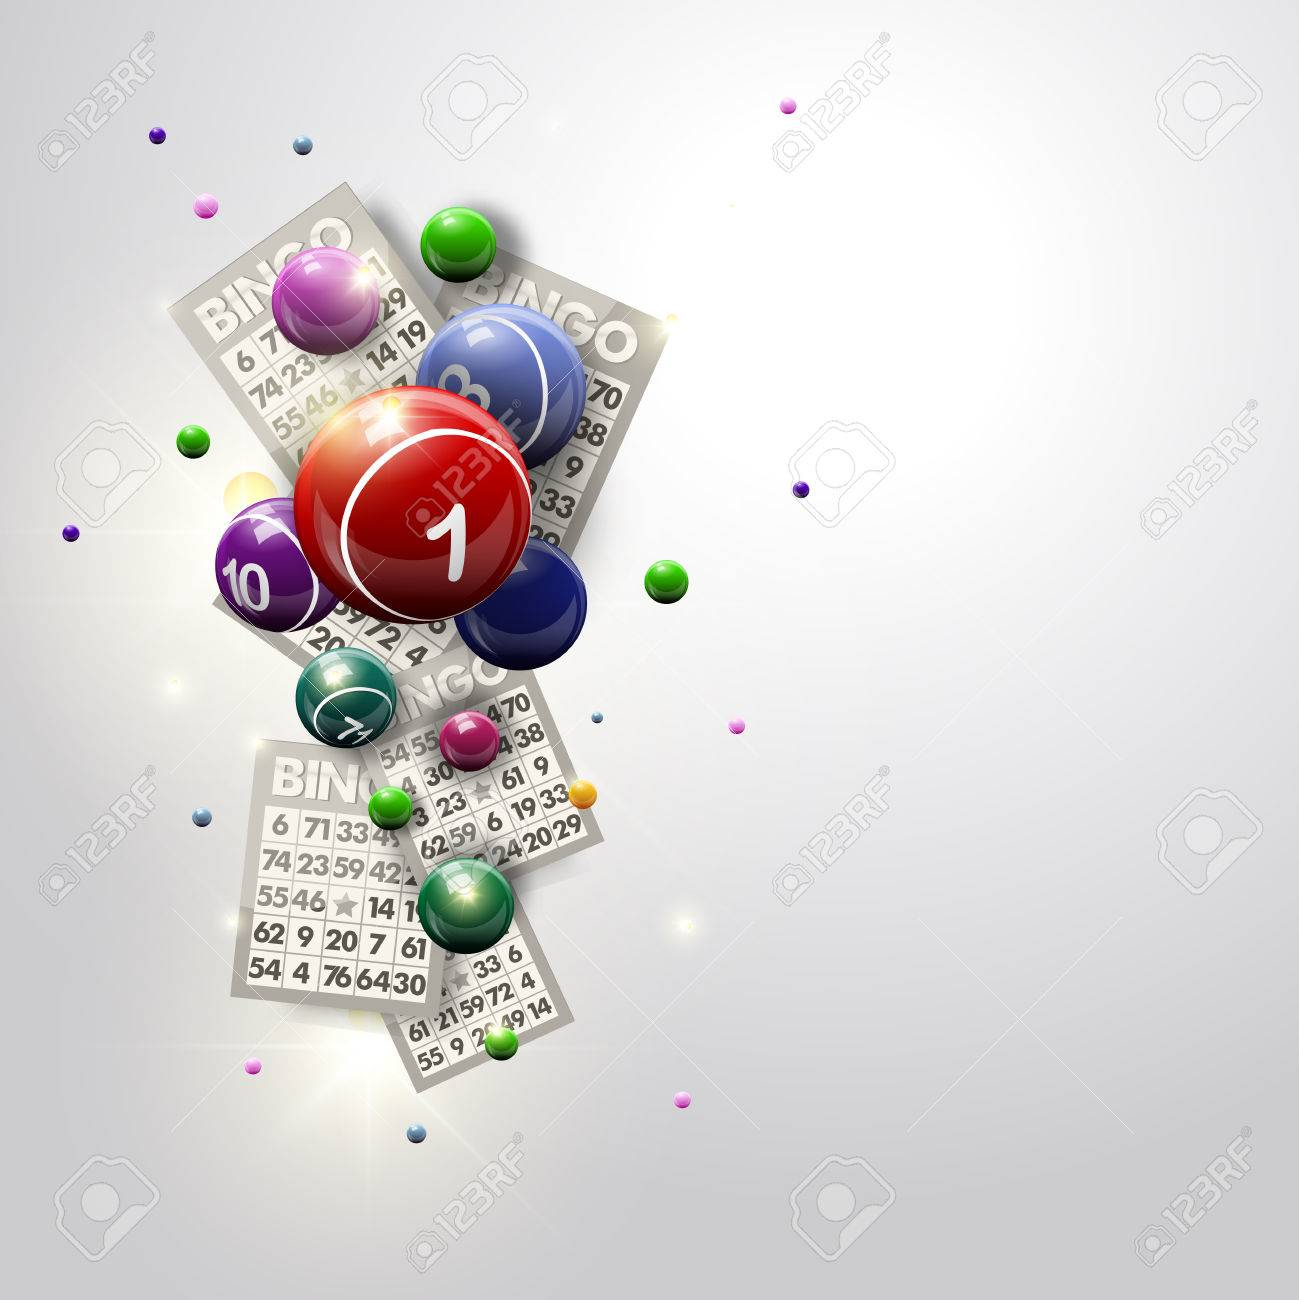 Bingo Balls and Cards Design on a Glowing White Background - 55717479